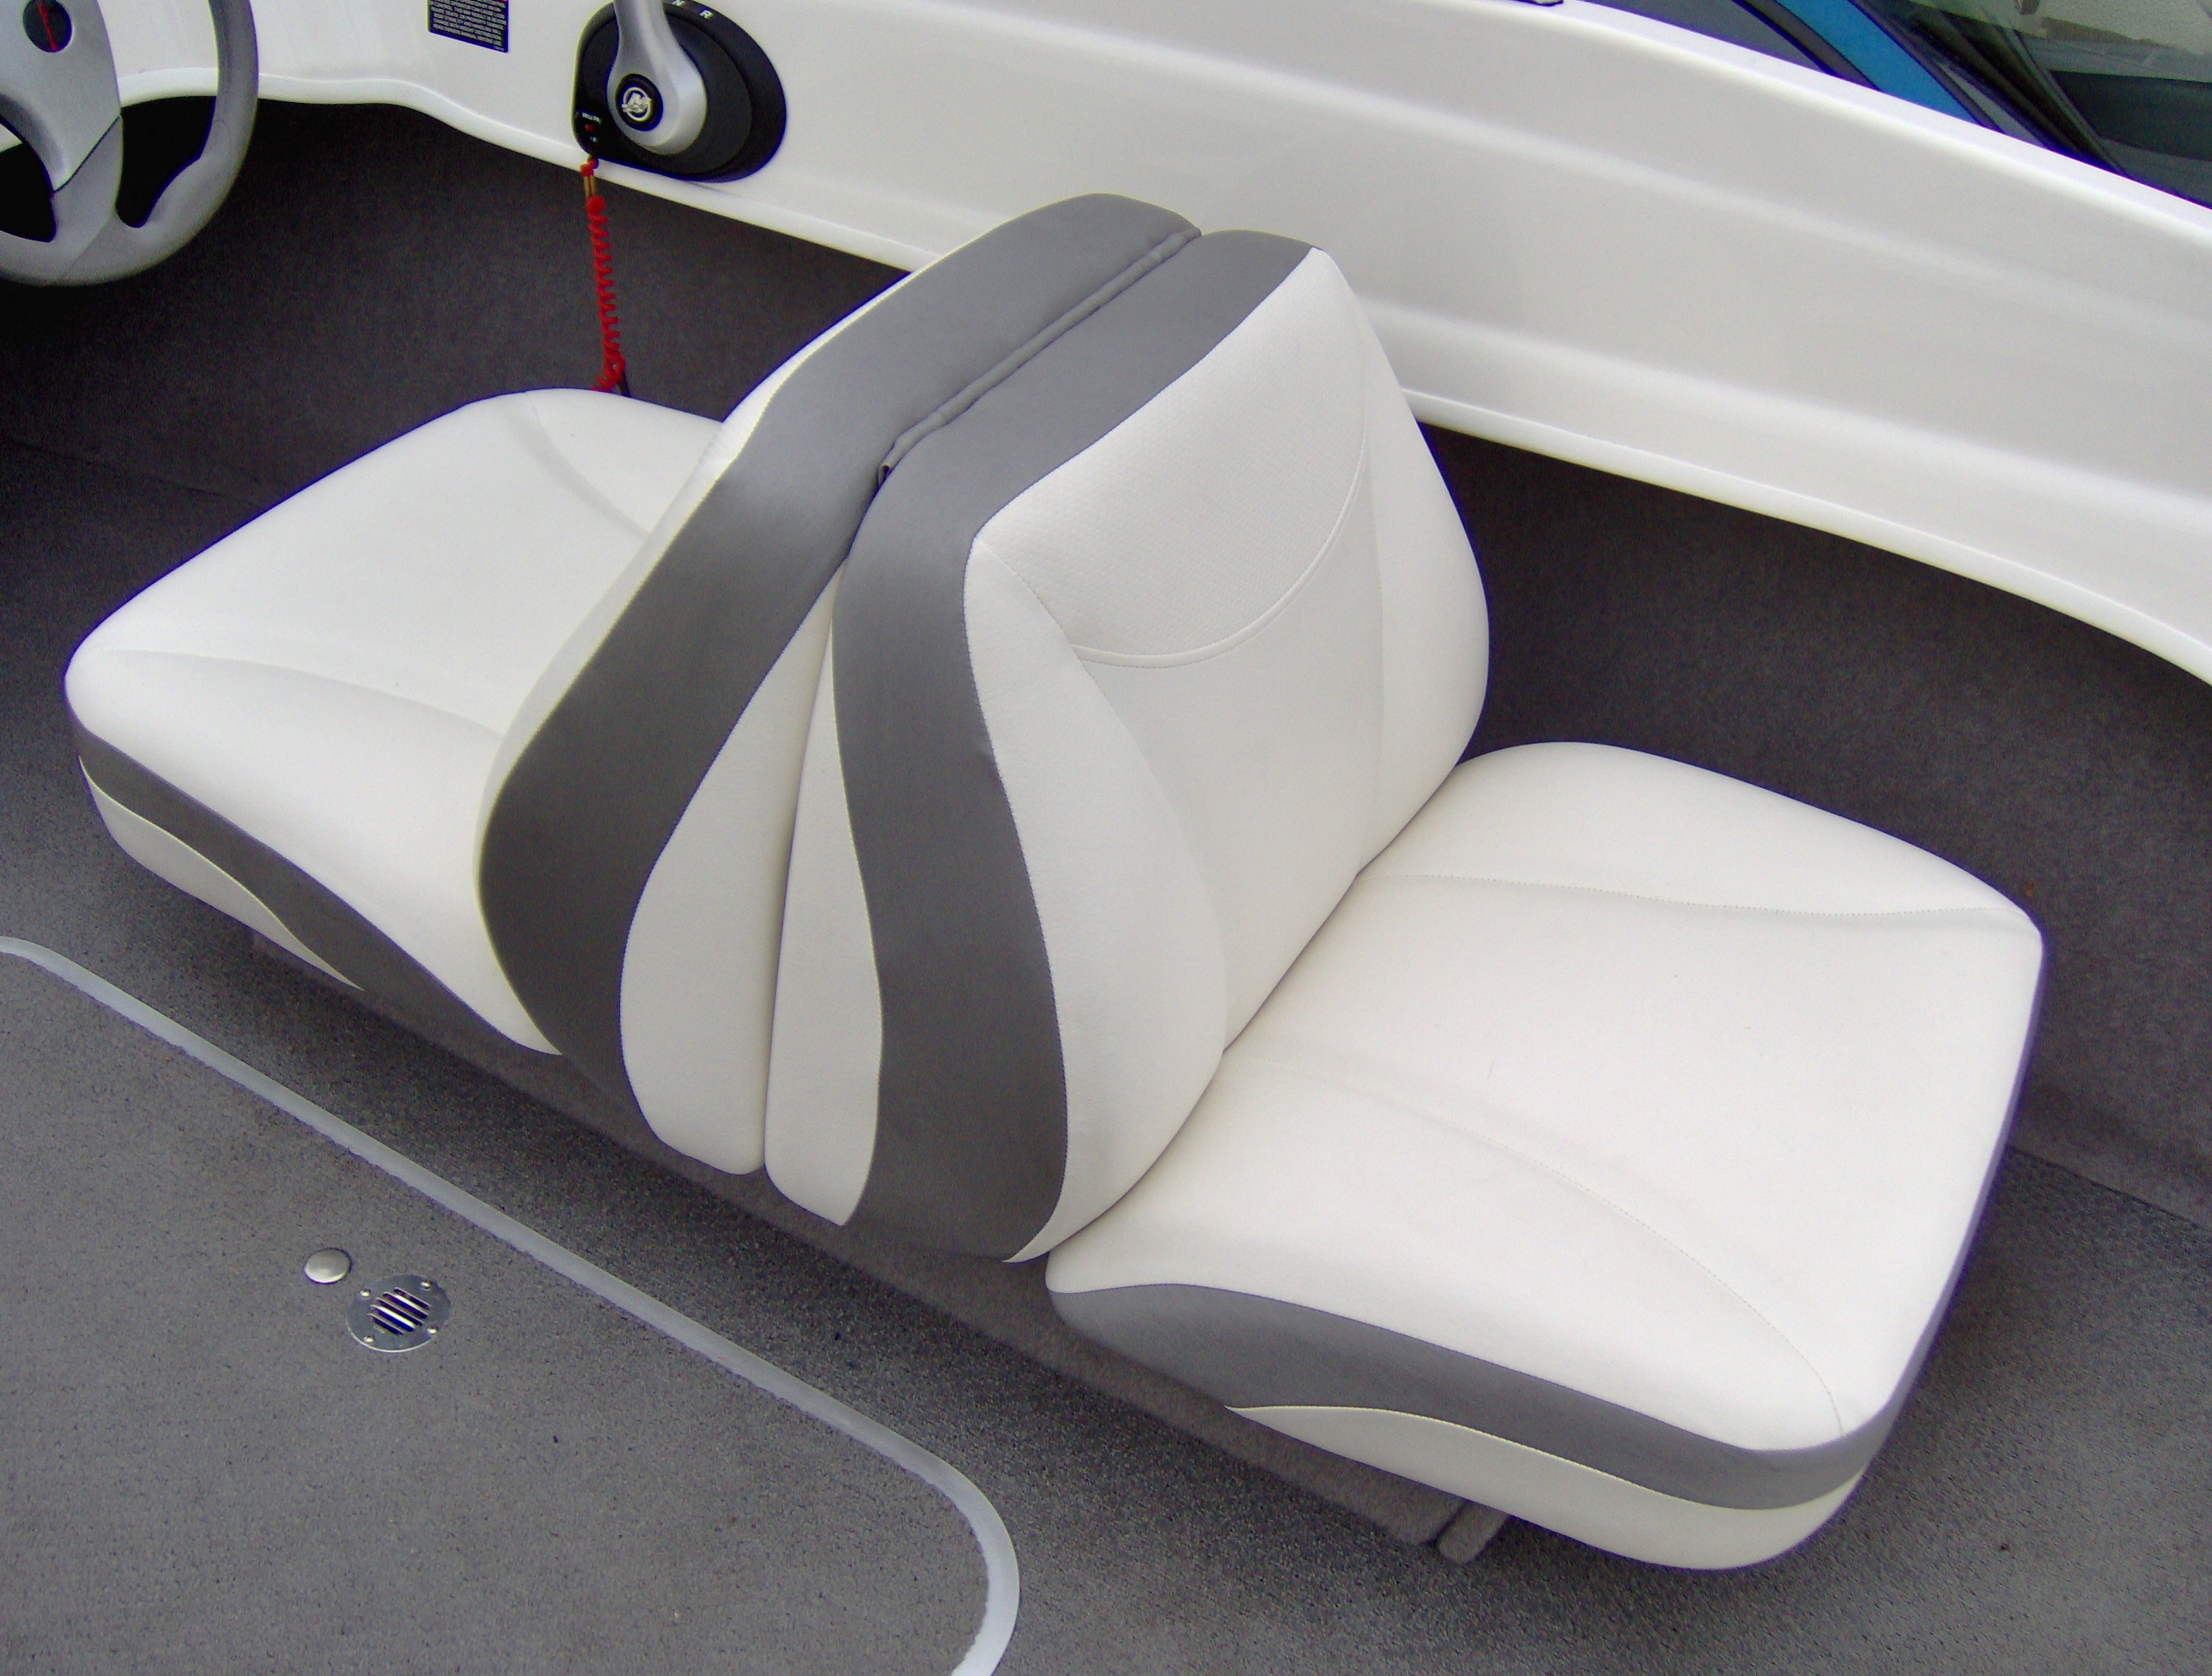 replacement captains chairs for boats desk chair headrest attachment 1989 bayliner capri seat covers velcromag